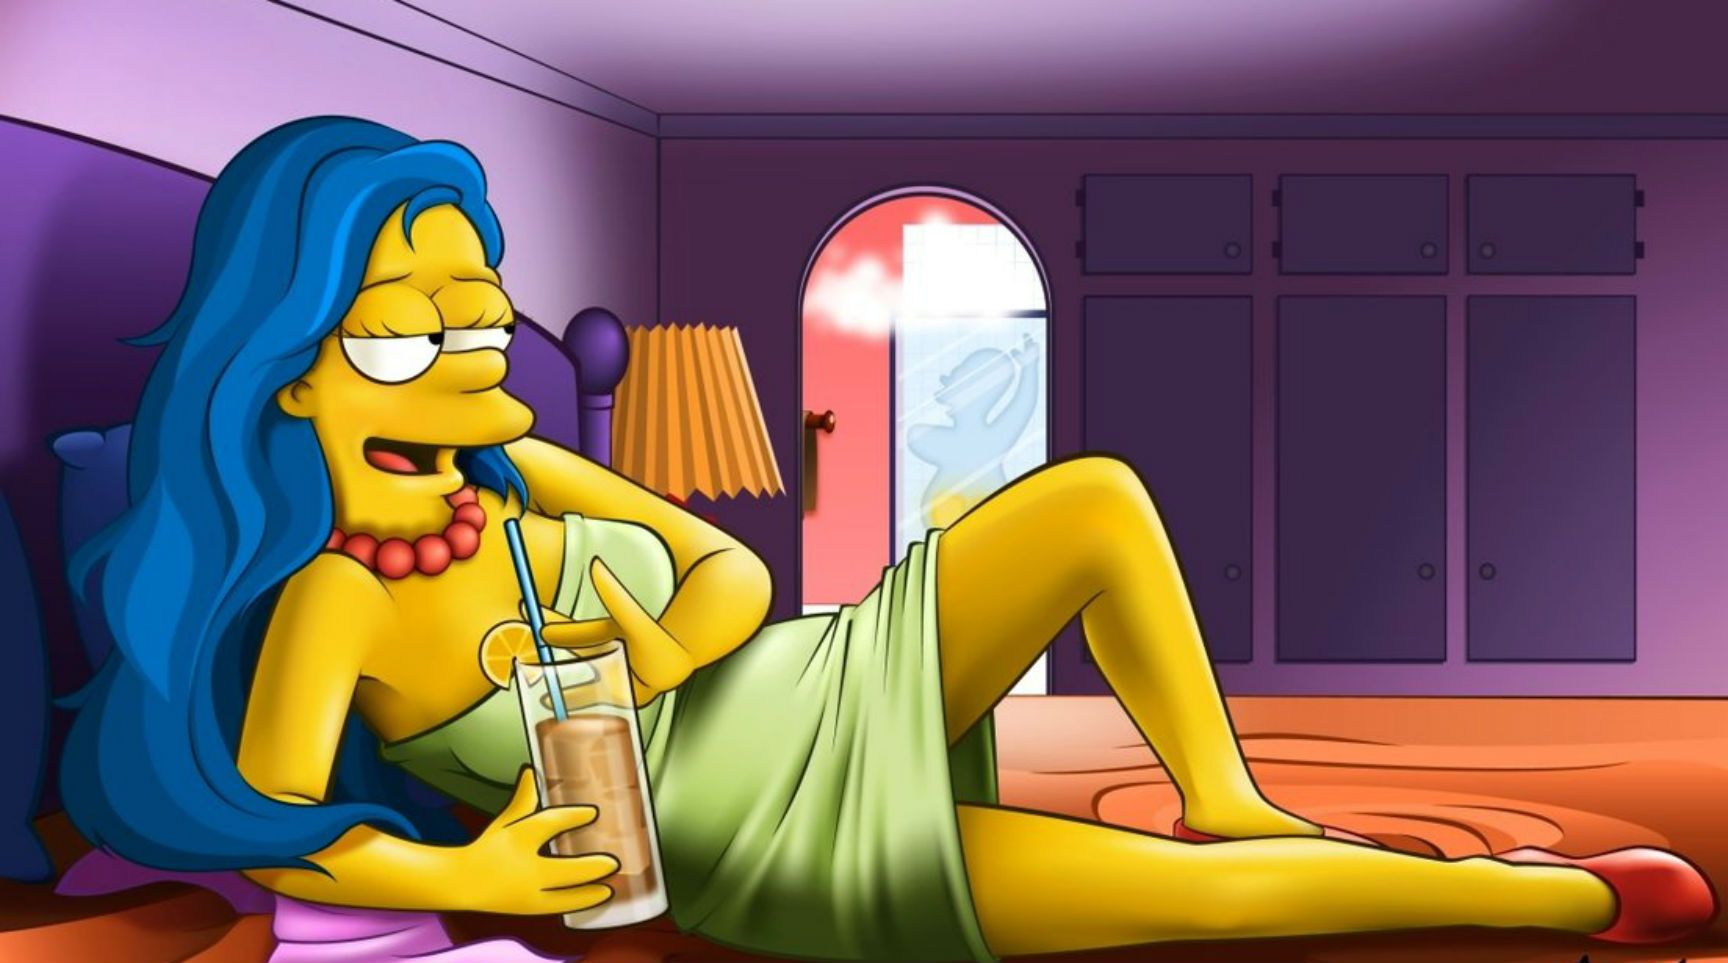 The 15 Hottest Cartoon Moms We Secretly Have A Crush On